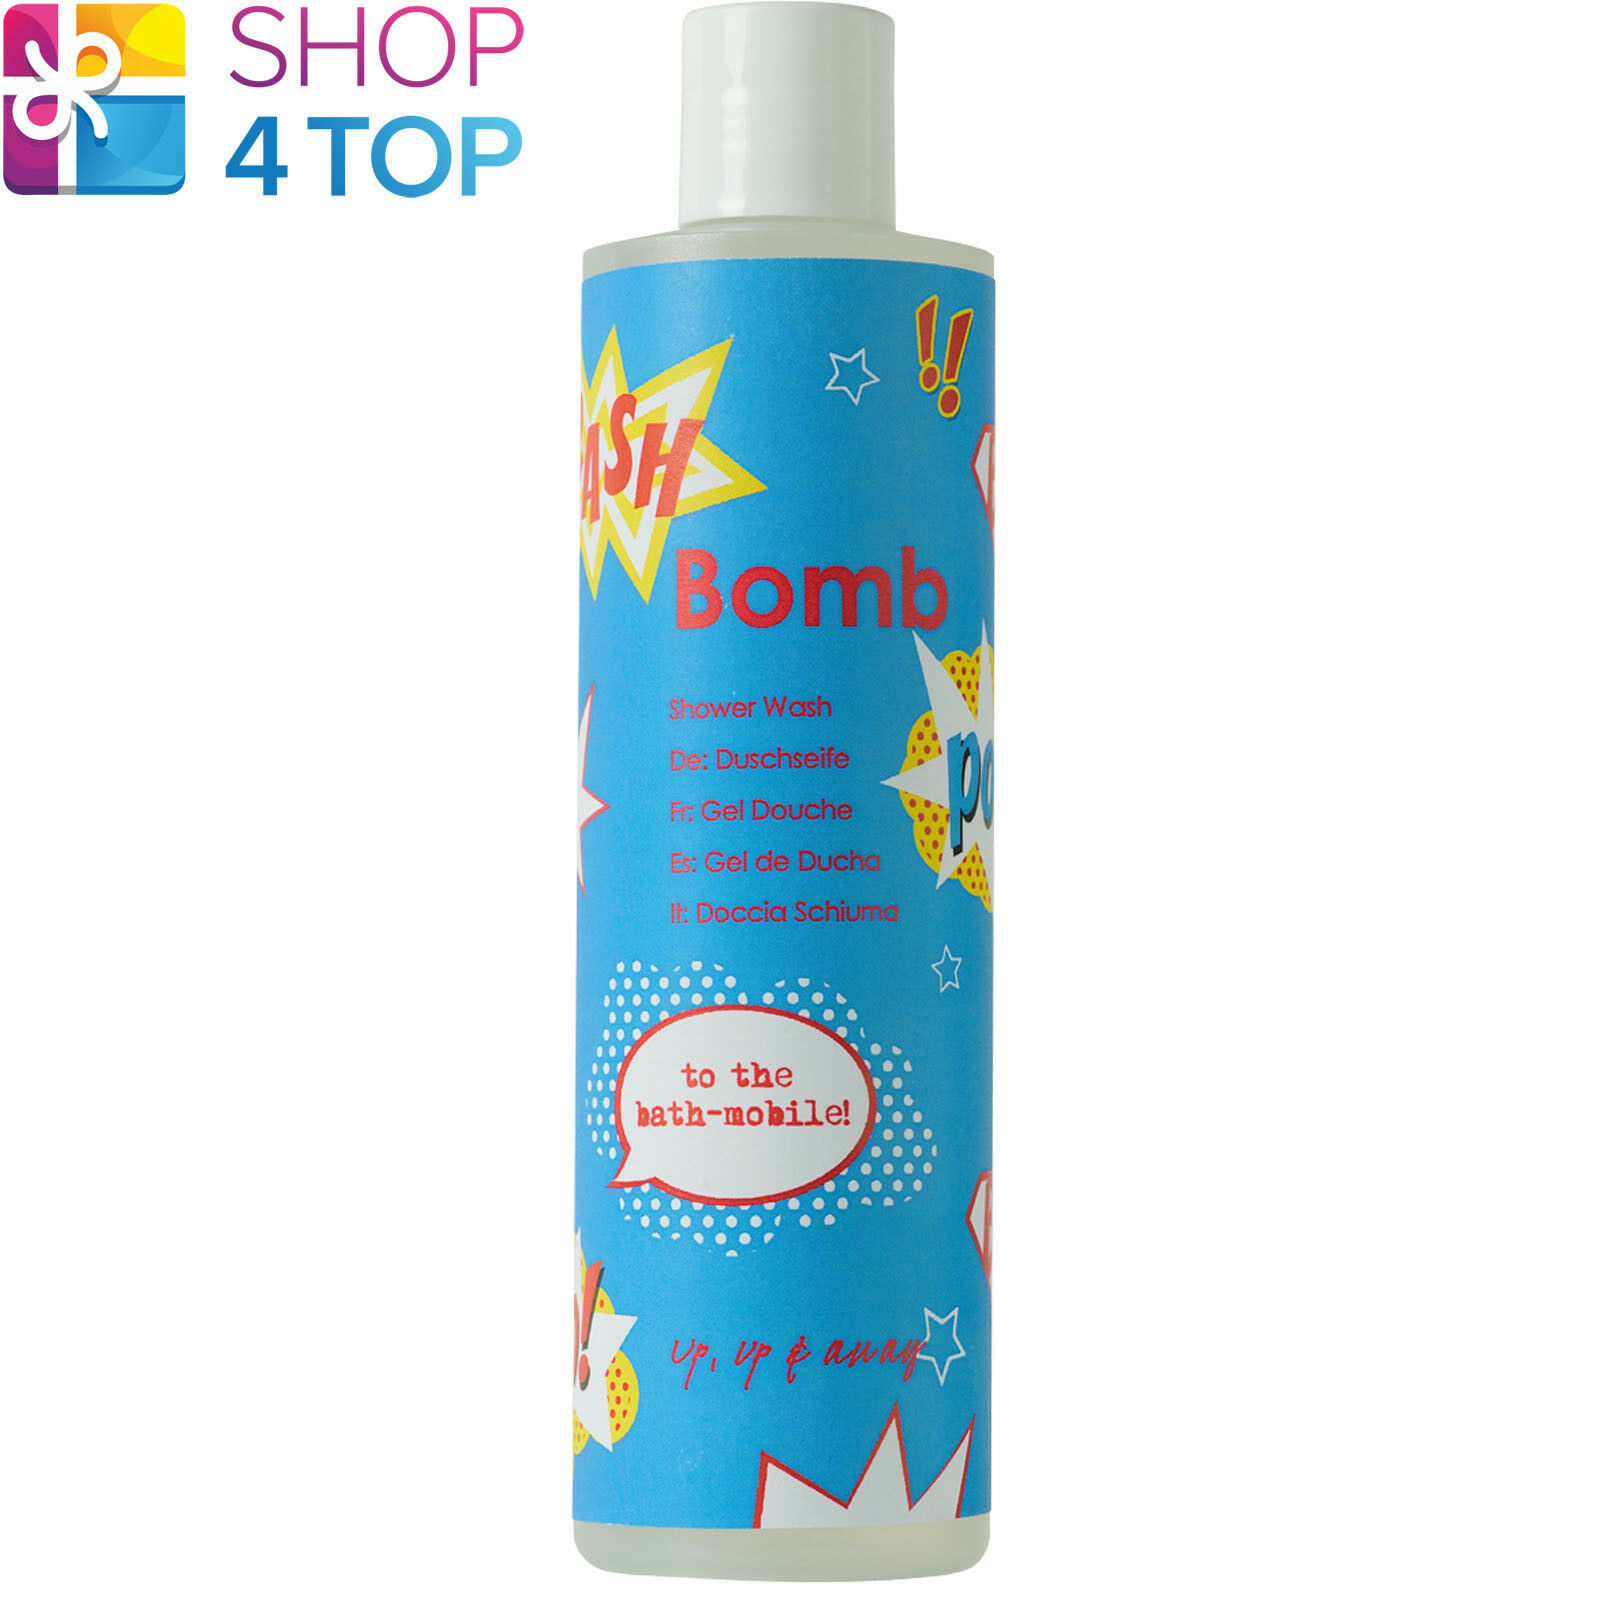 UP UP & AWAY SHOWER GEL 300 ML LIME BLACK PEPPER NATURAL BOMB COSMETICS NEW - $11.77